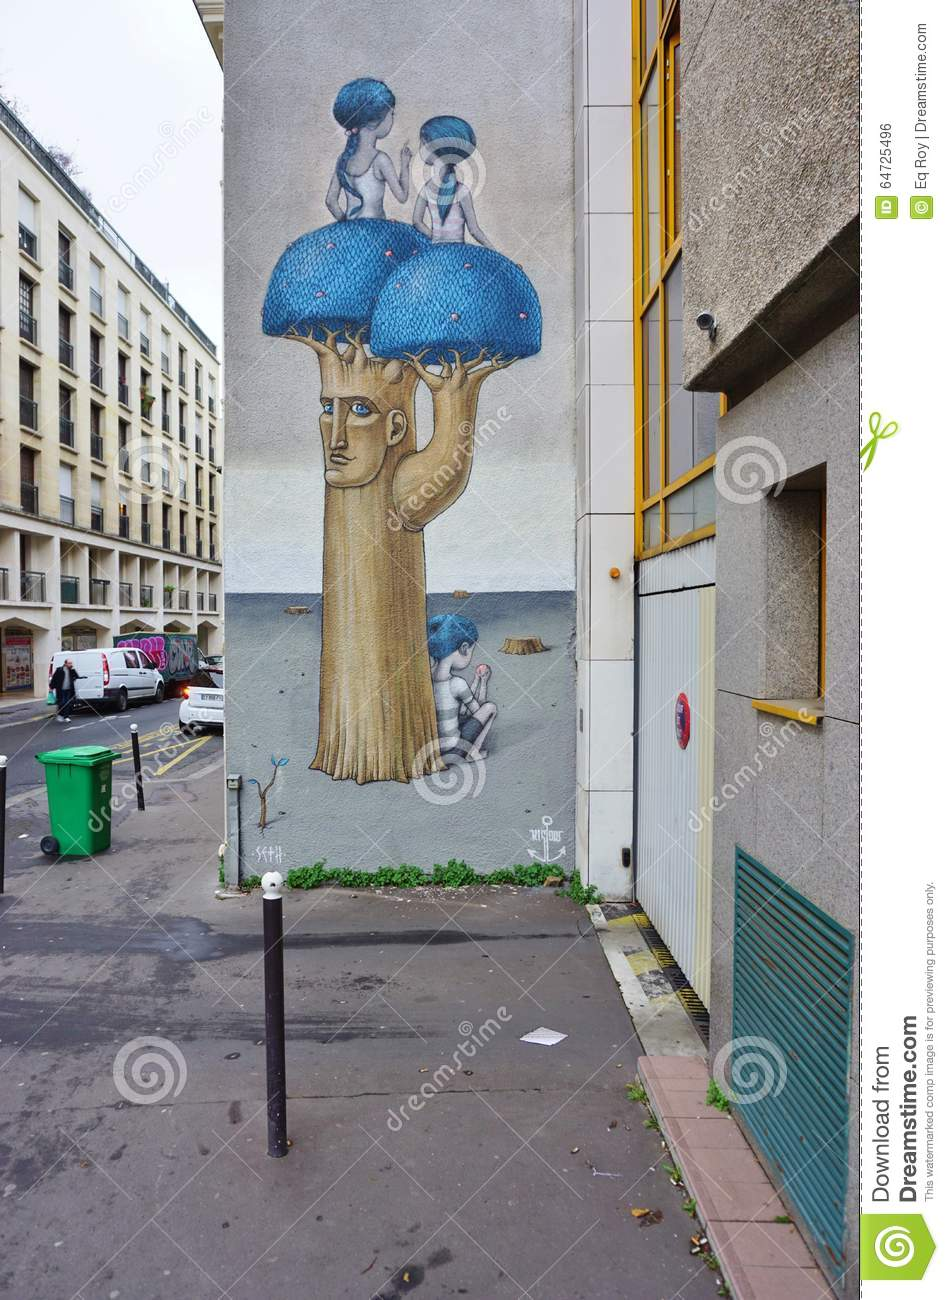 wall mural painting by famous french street artist seth artist france french globepainter julien malland mural paris seth street wall